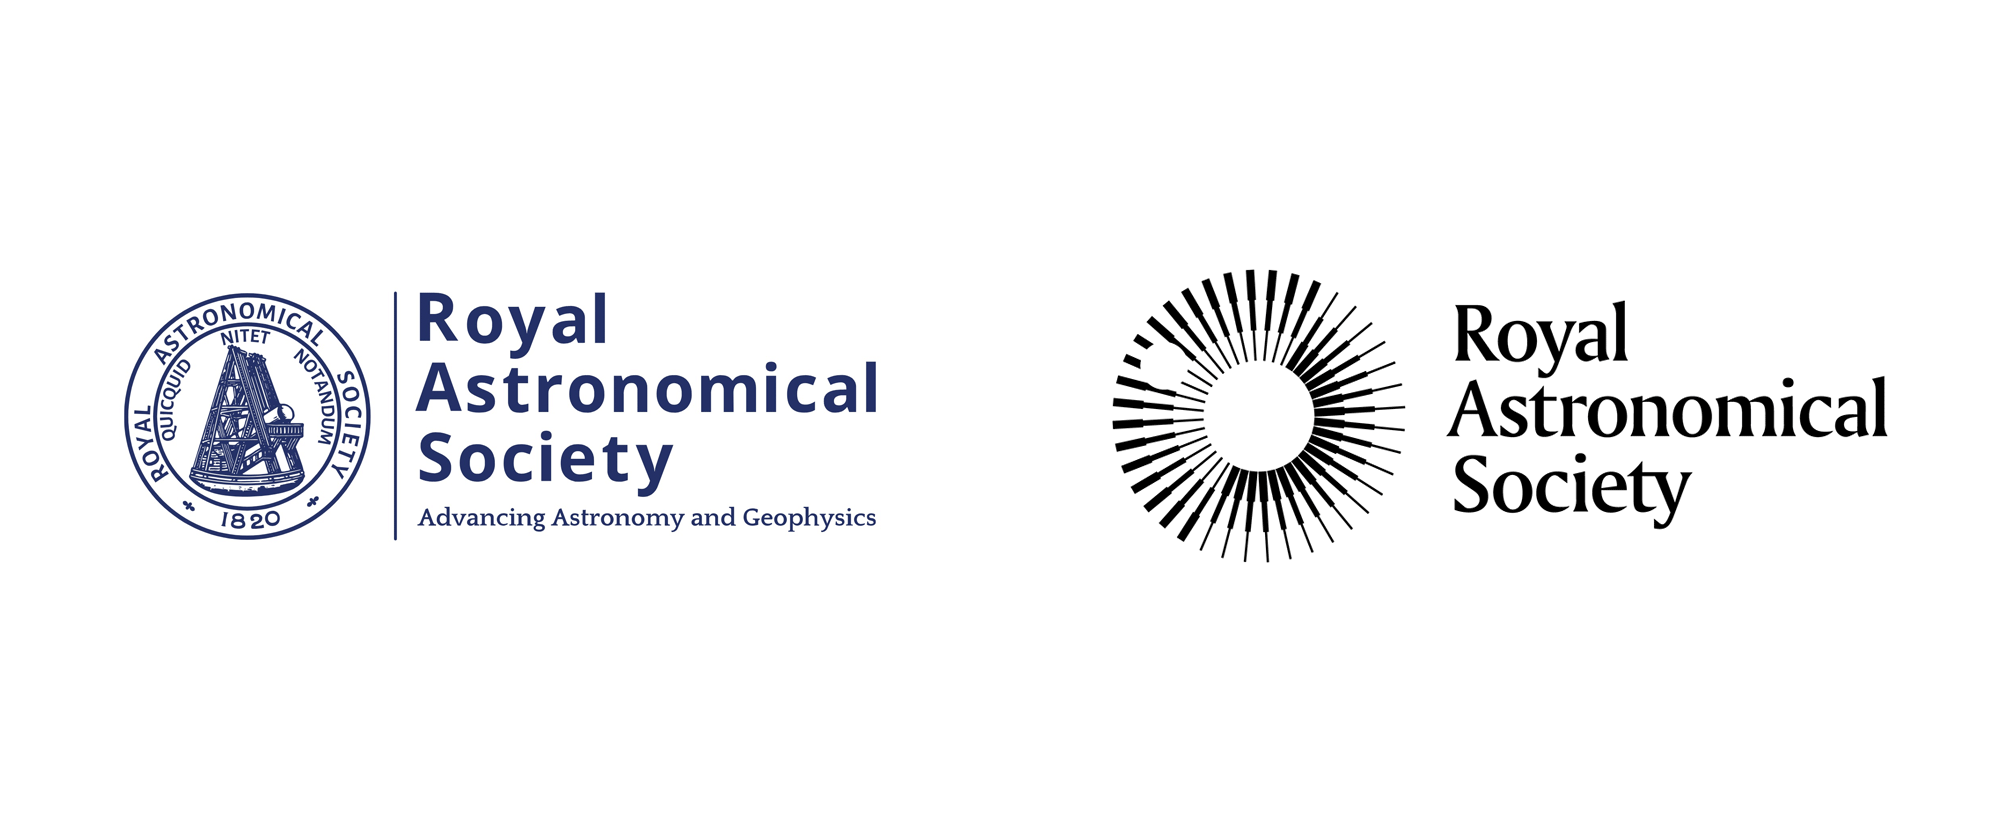 New Logo and Identity for Royal Astronomical Society by Johnson Banks